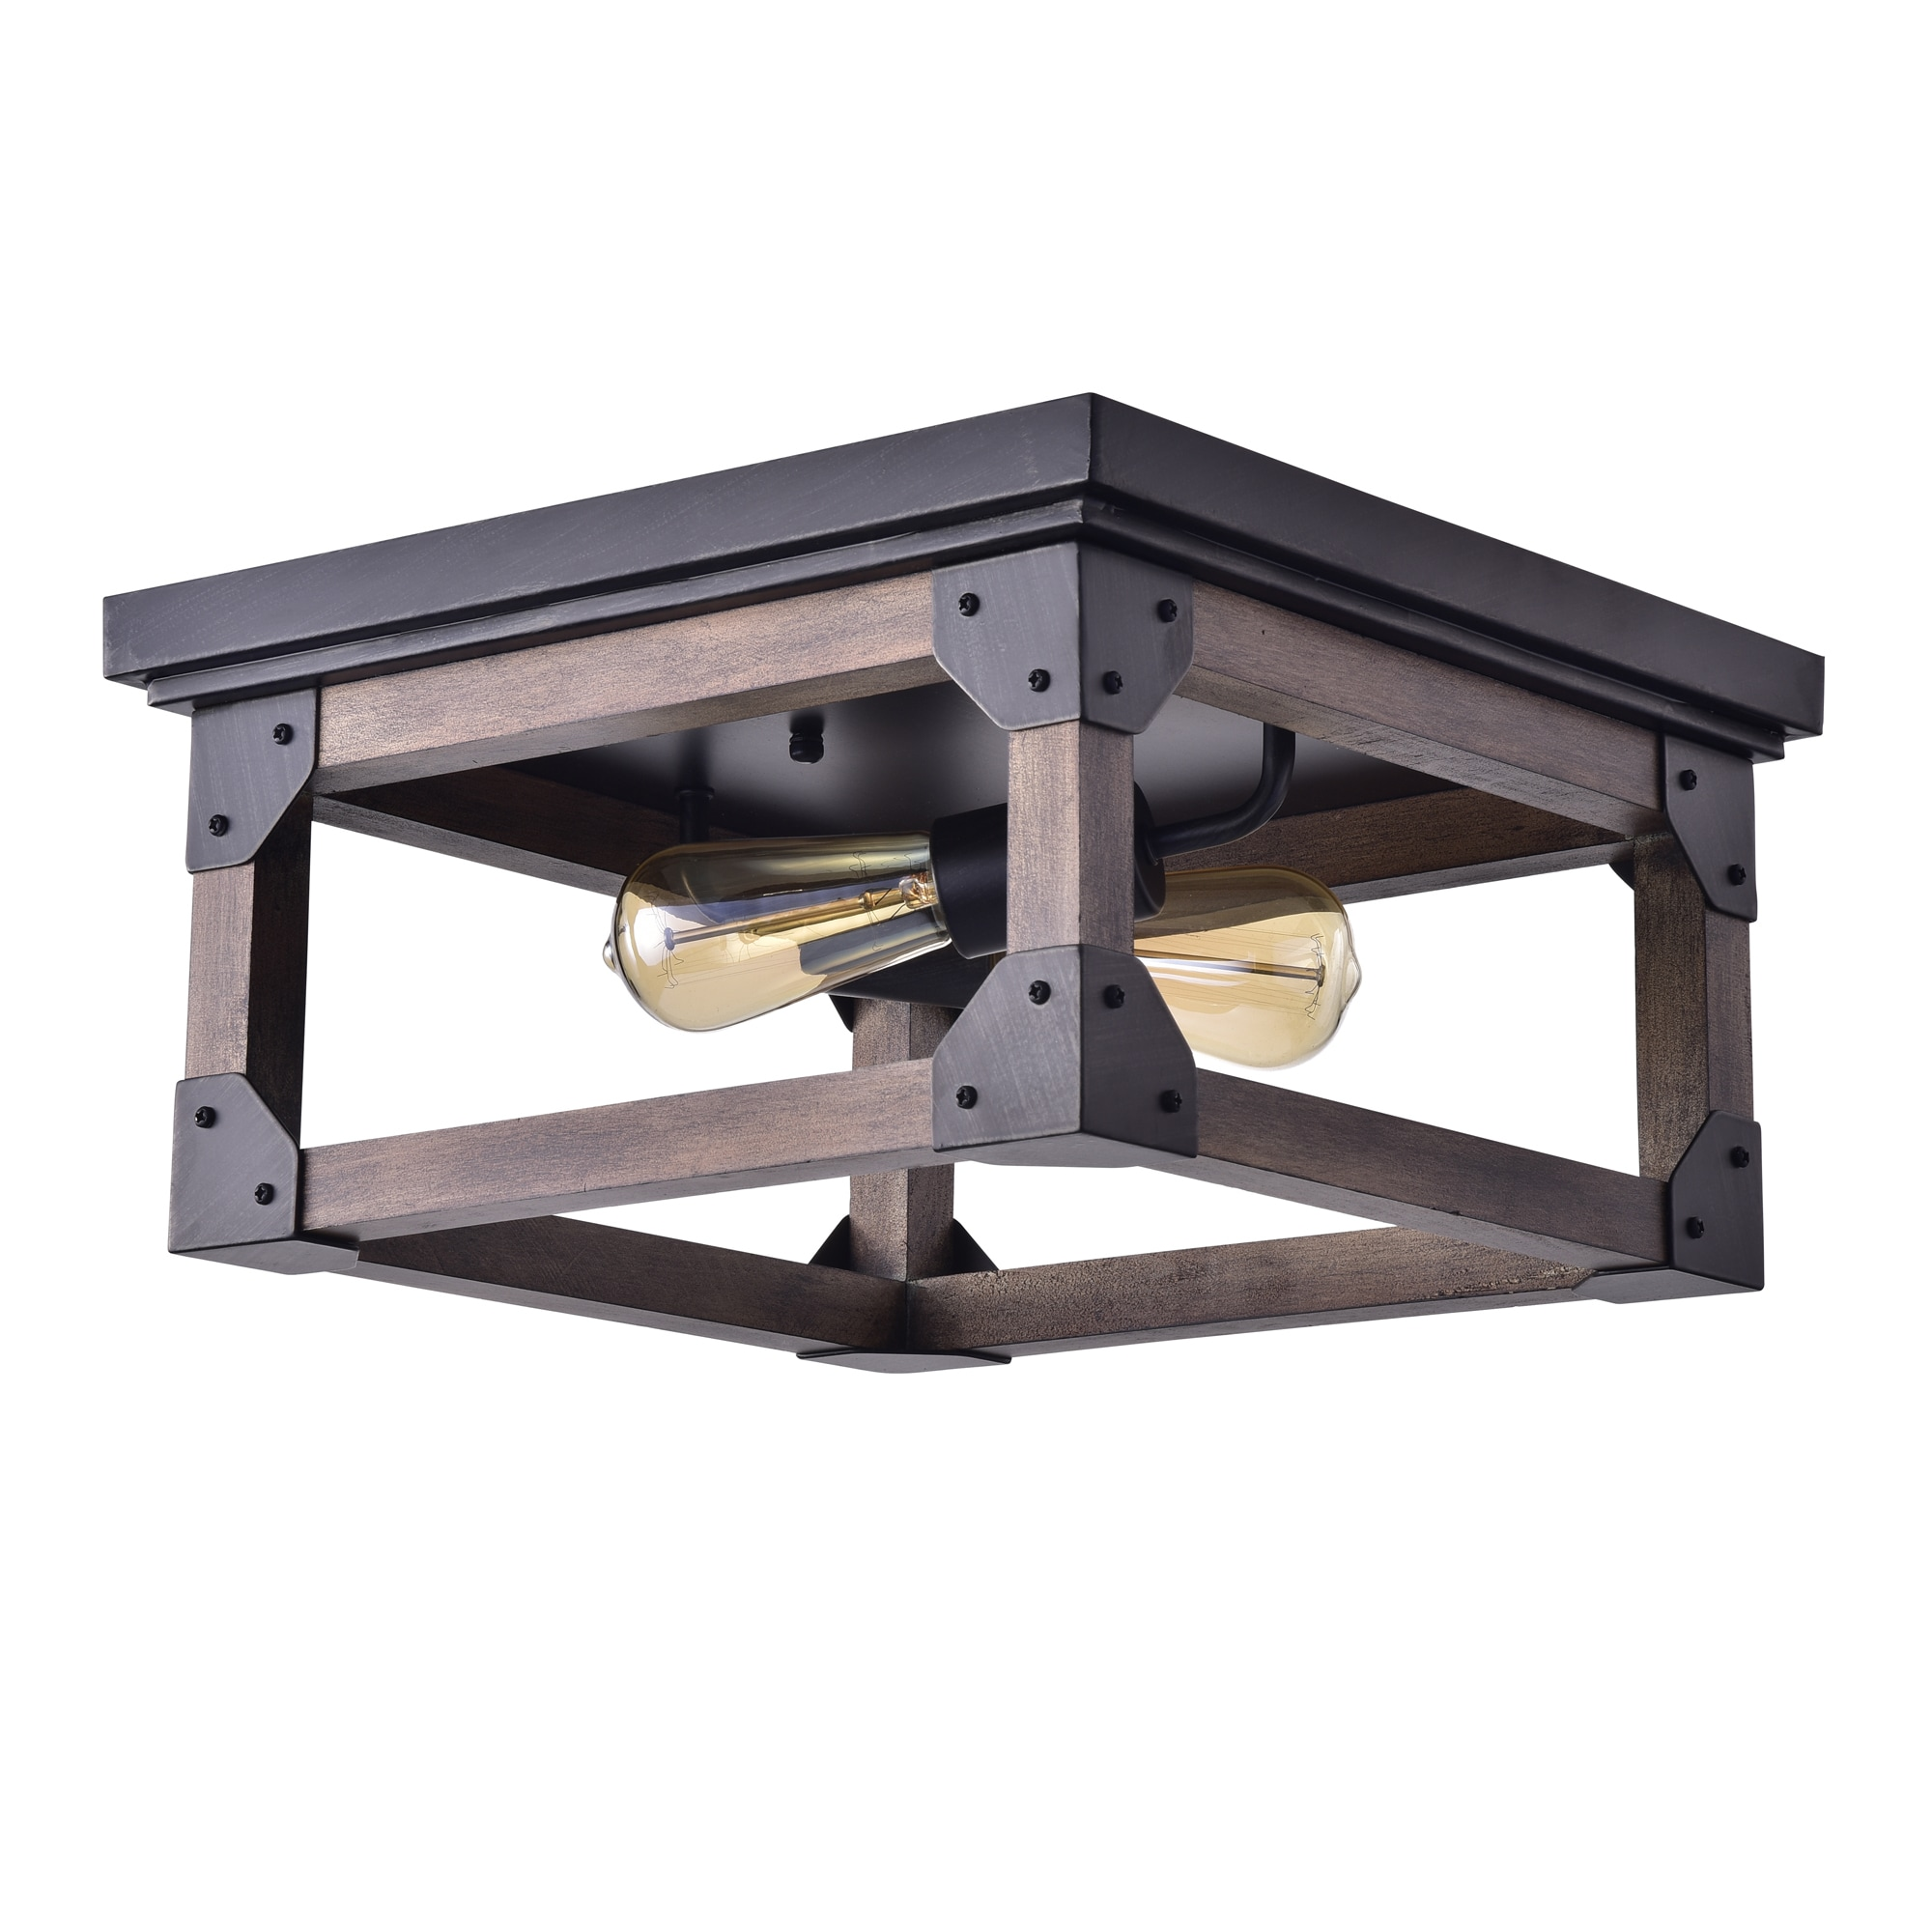 arthouse small flush melange light co collections lighting lamp web ceilings mount montauk products wz ceiling the